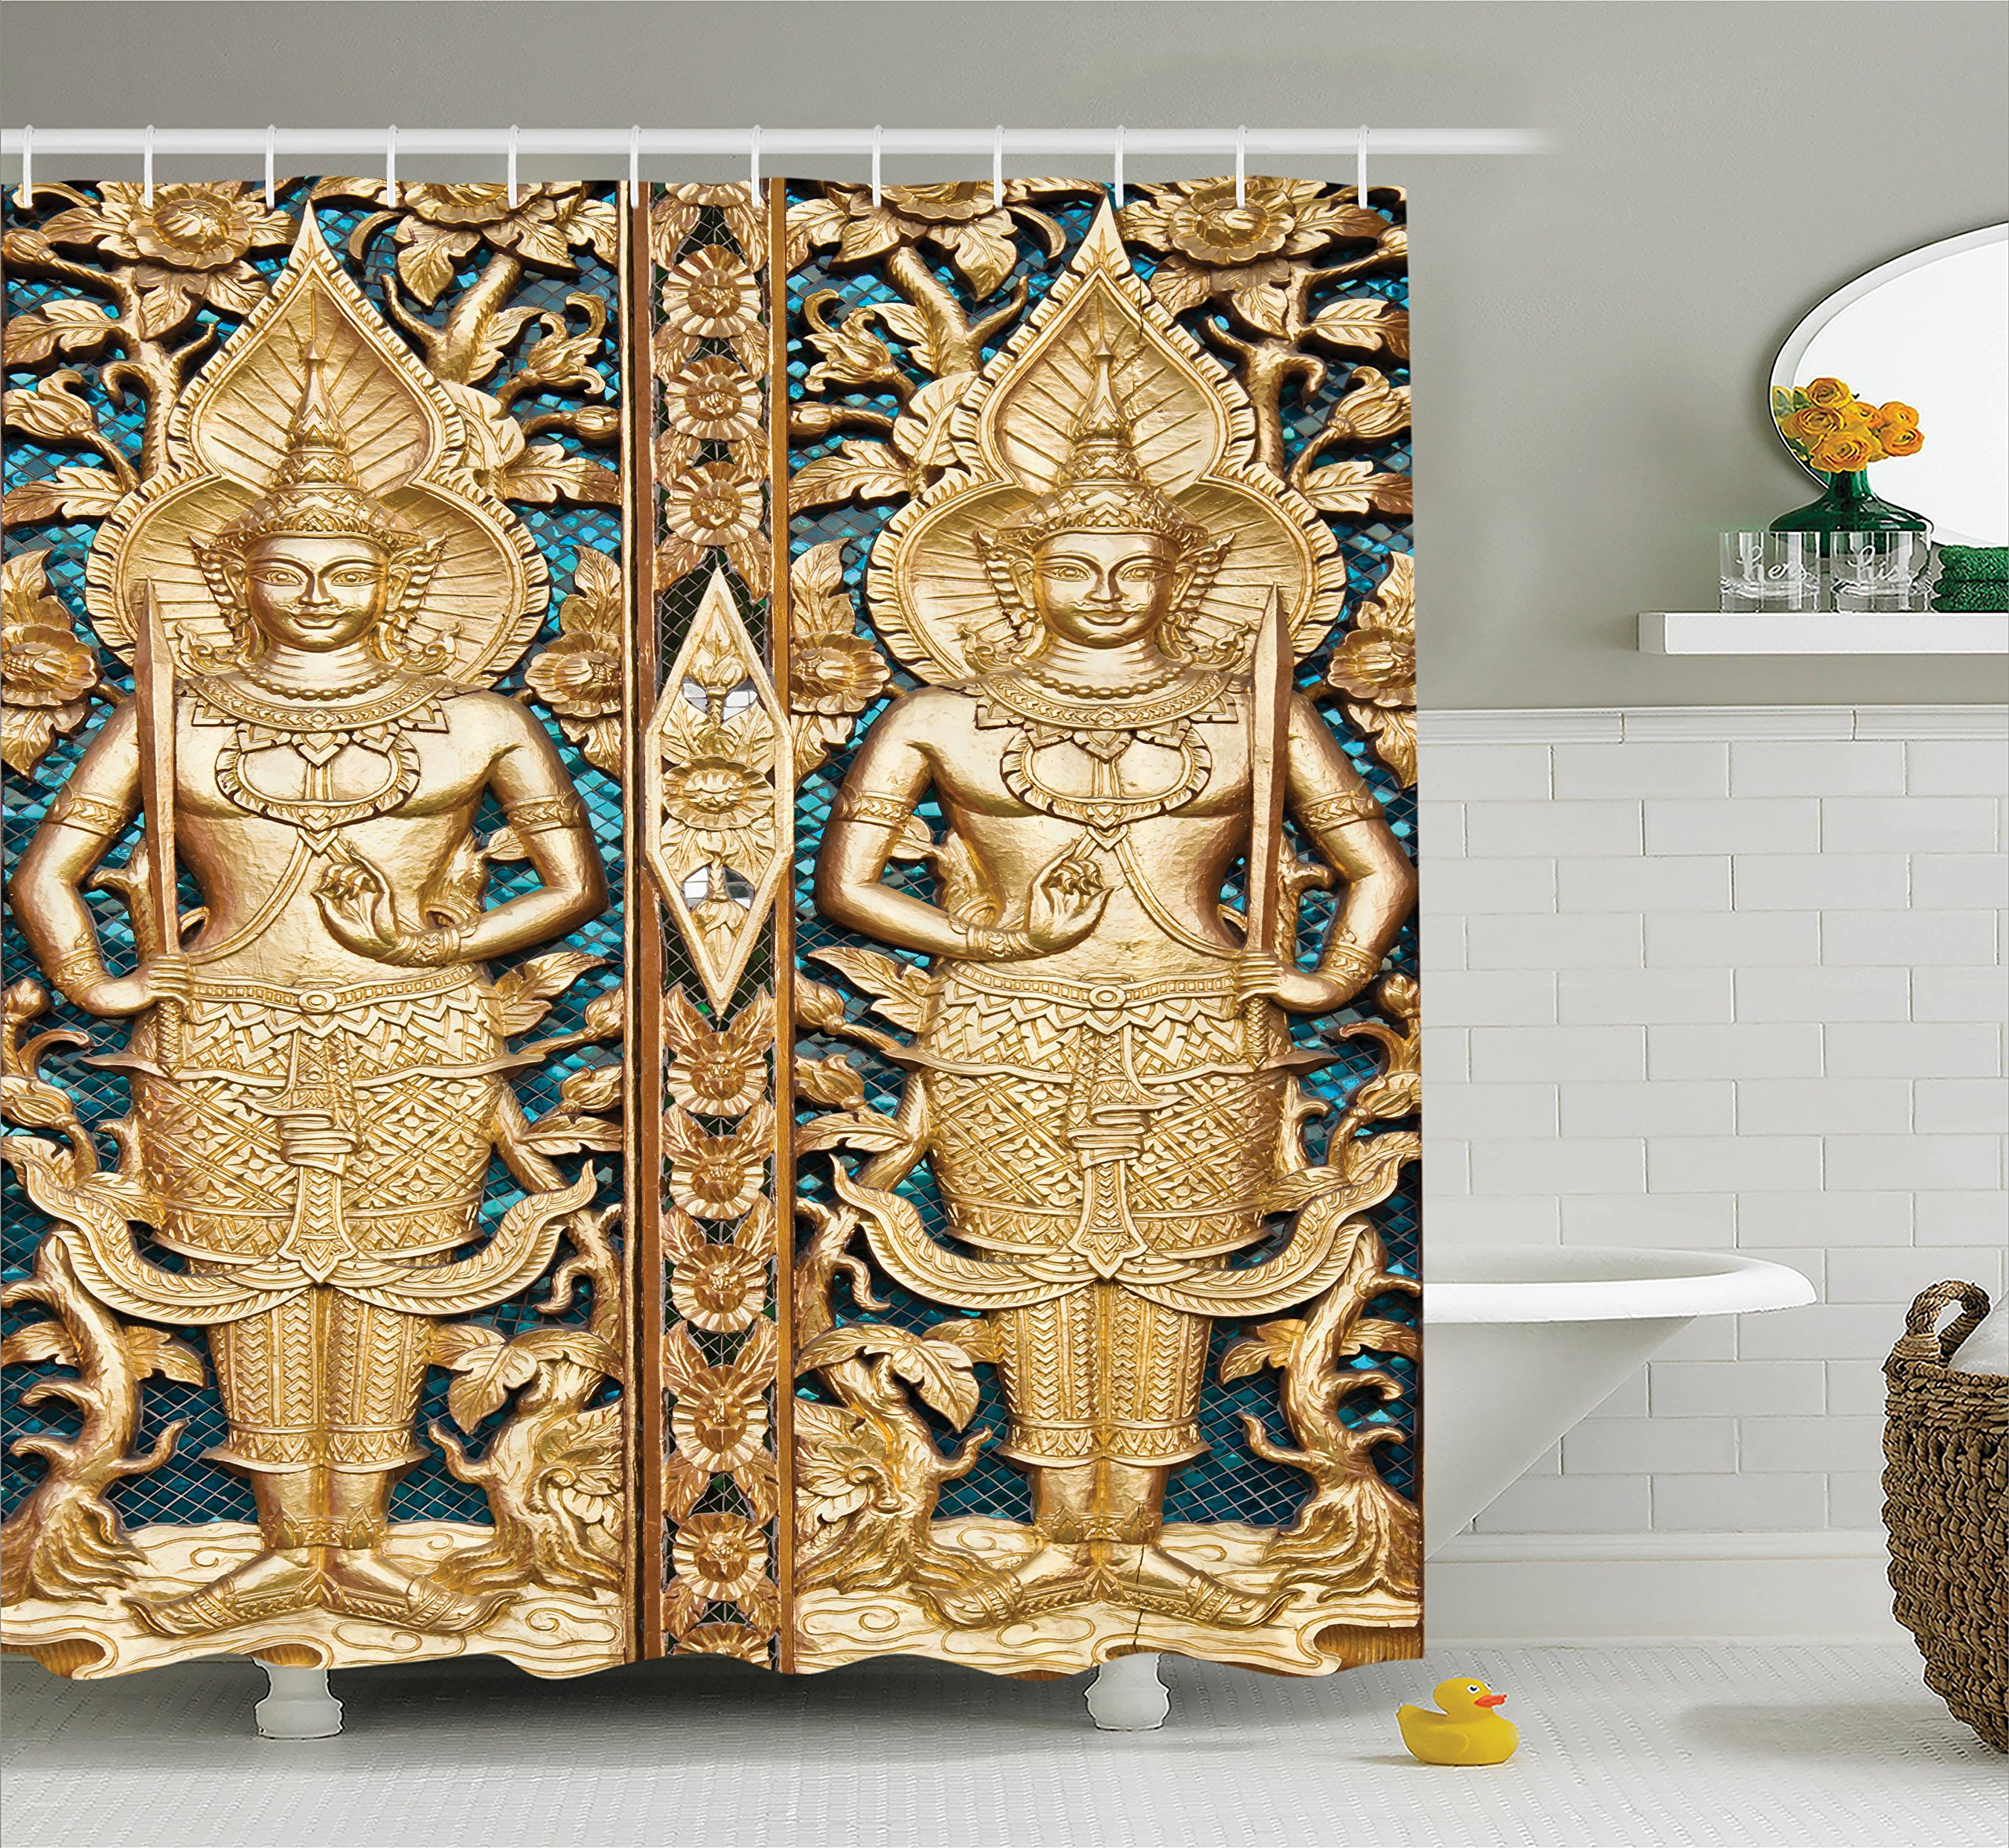 Ambesonne Rustic Decor Collection, Thai Gate at Wat Sirisa Tong Thailand Buddhism Architecture History Spiritual Picture, Polyester Fabric Bathroom Shower Curtain Set with Hooks, Golden Teal by Ambesonne